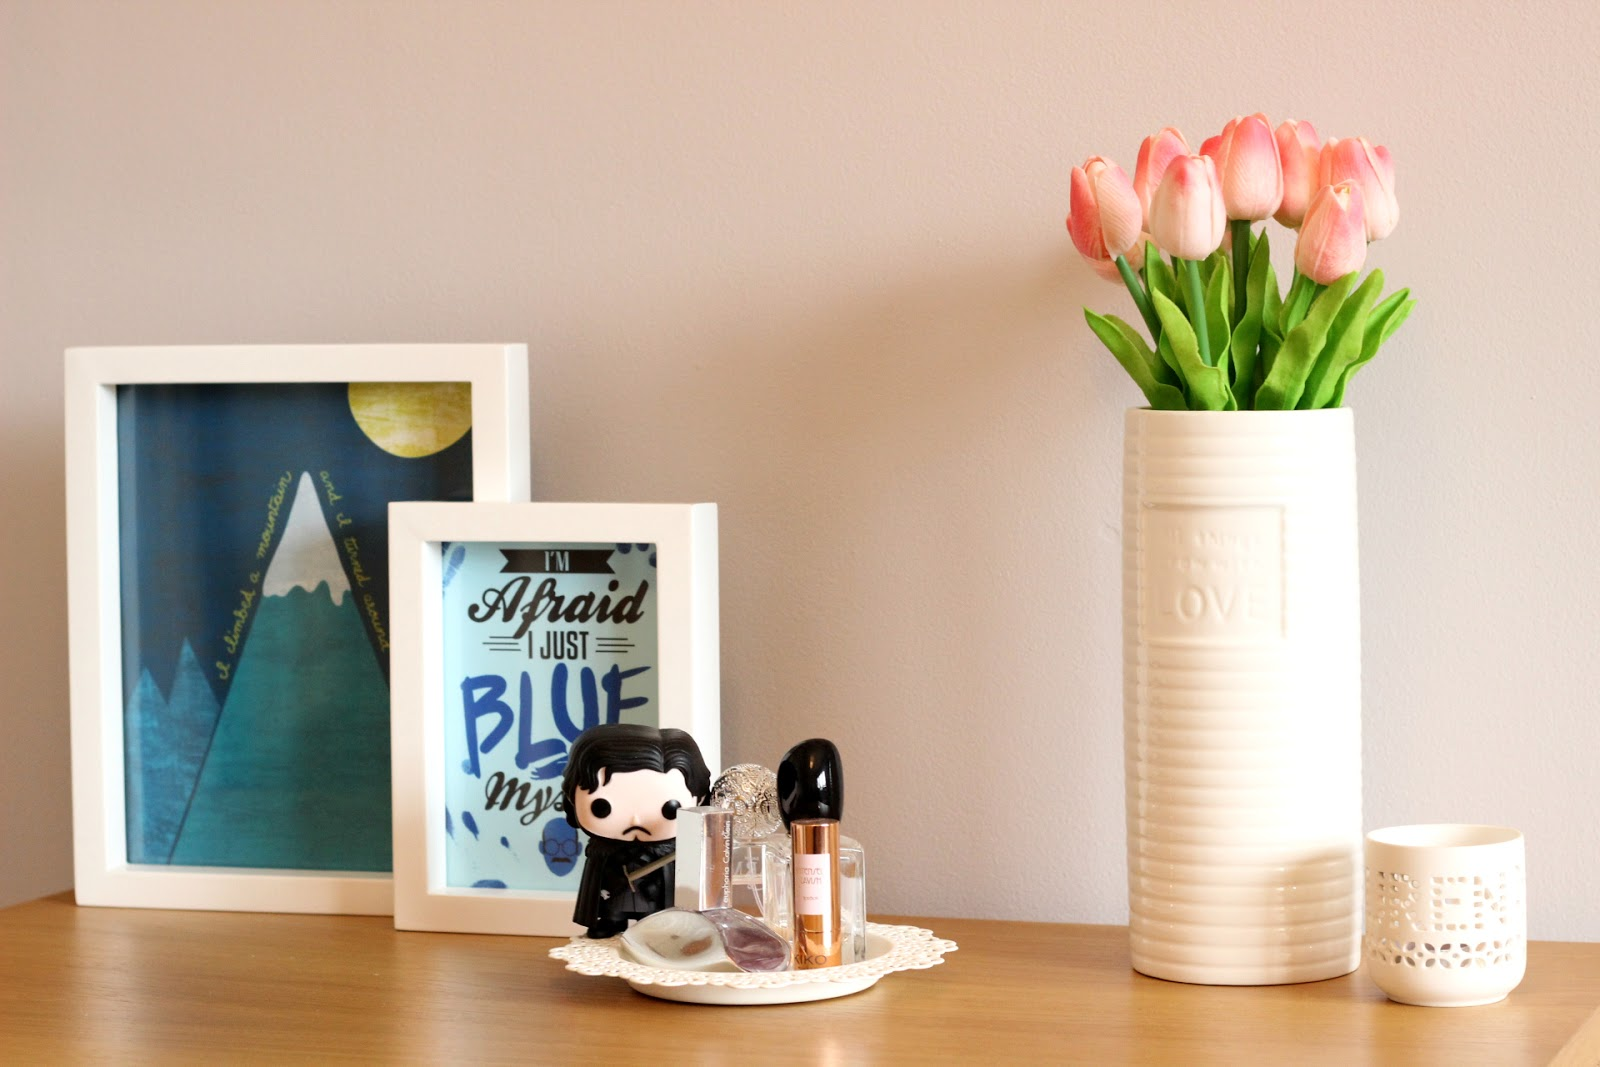 Adding Art Prints To Spruce Up A Room